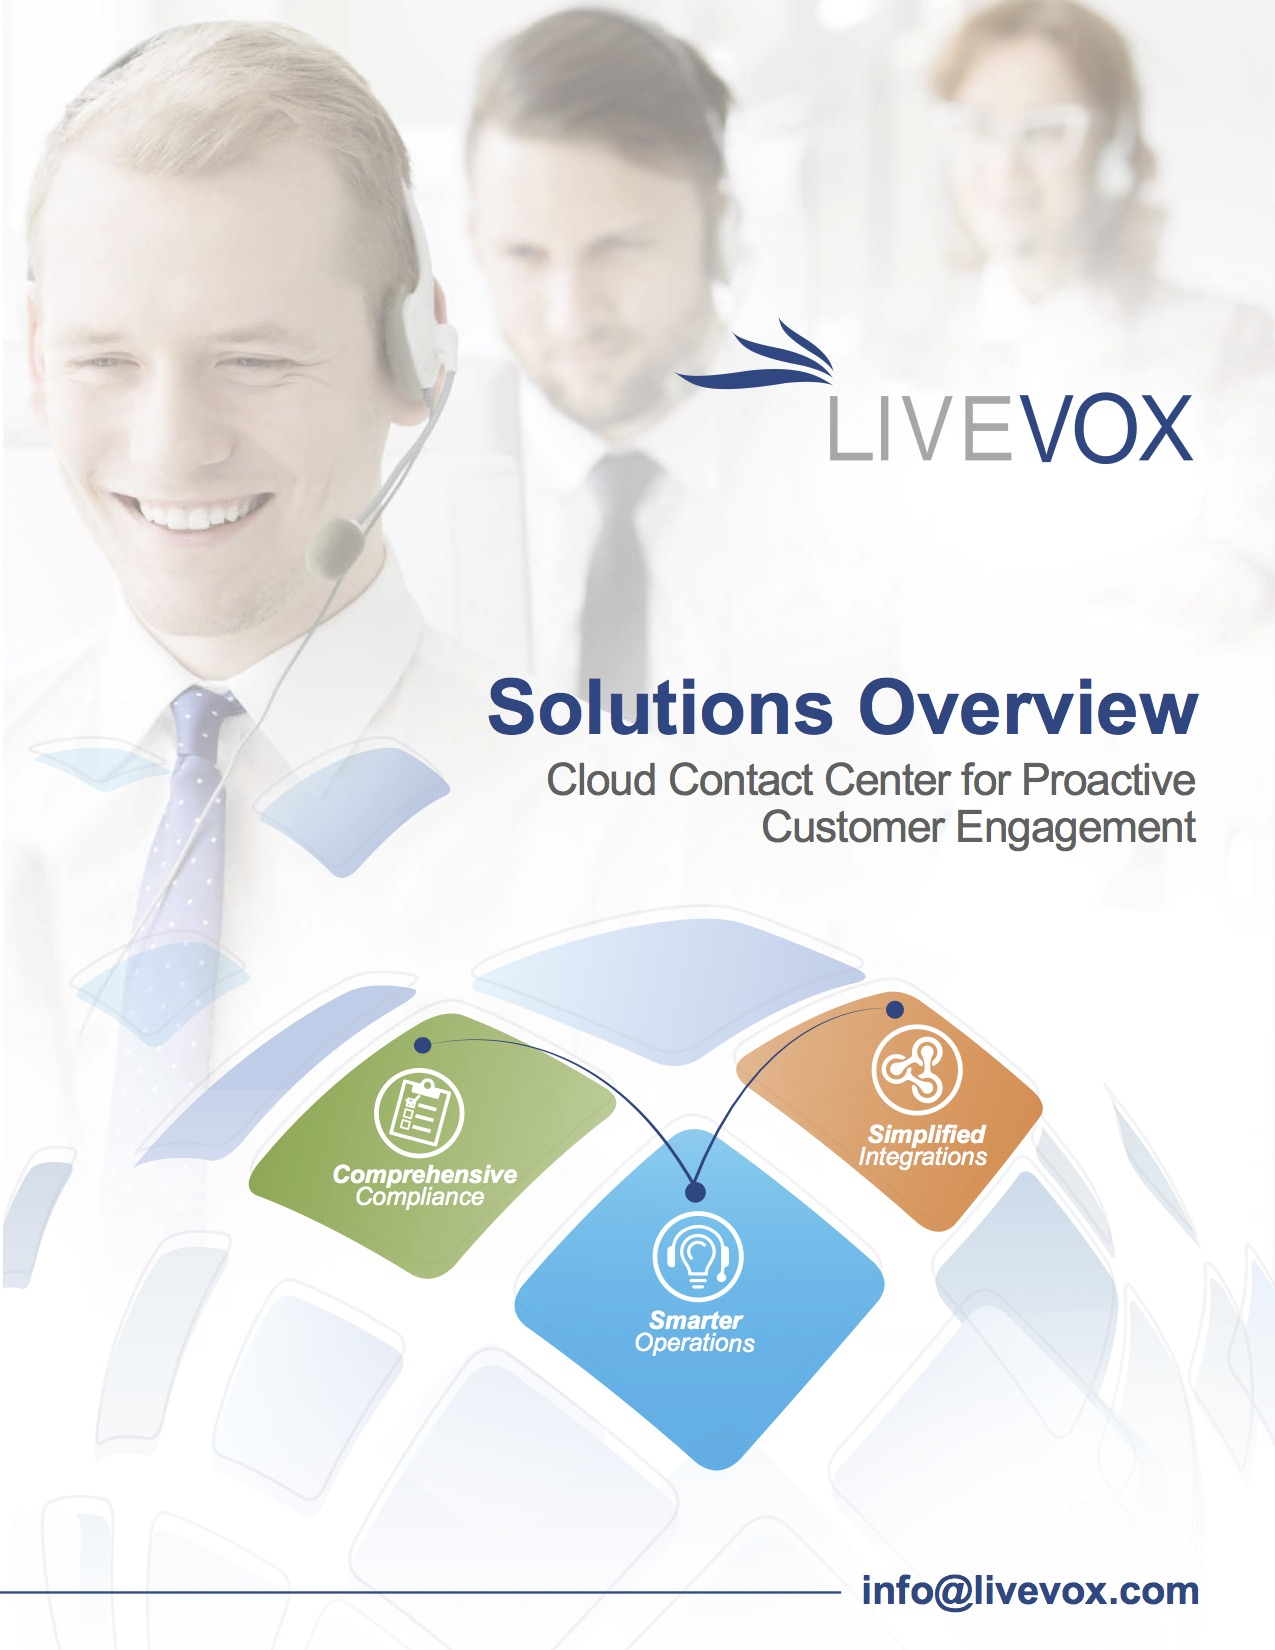 LiveVox Solutions Overview (11.2016) front-page.jpg